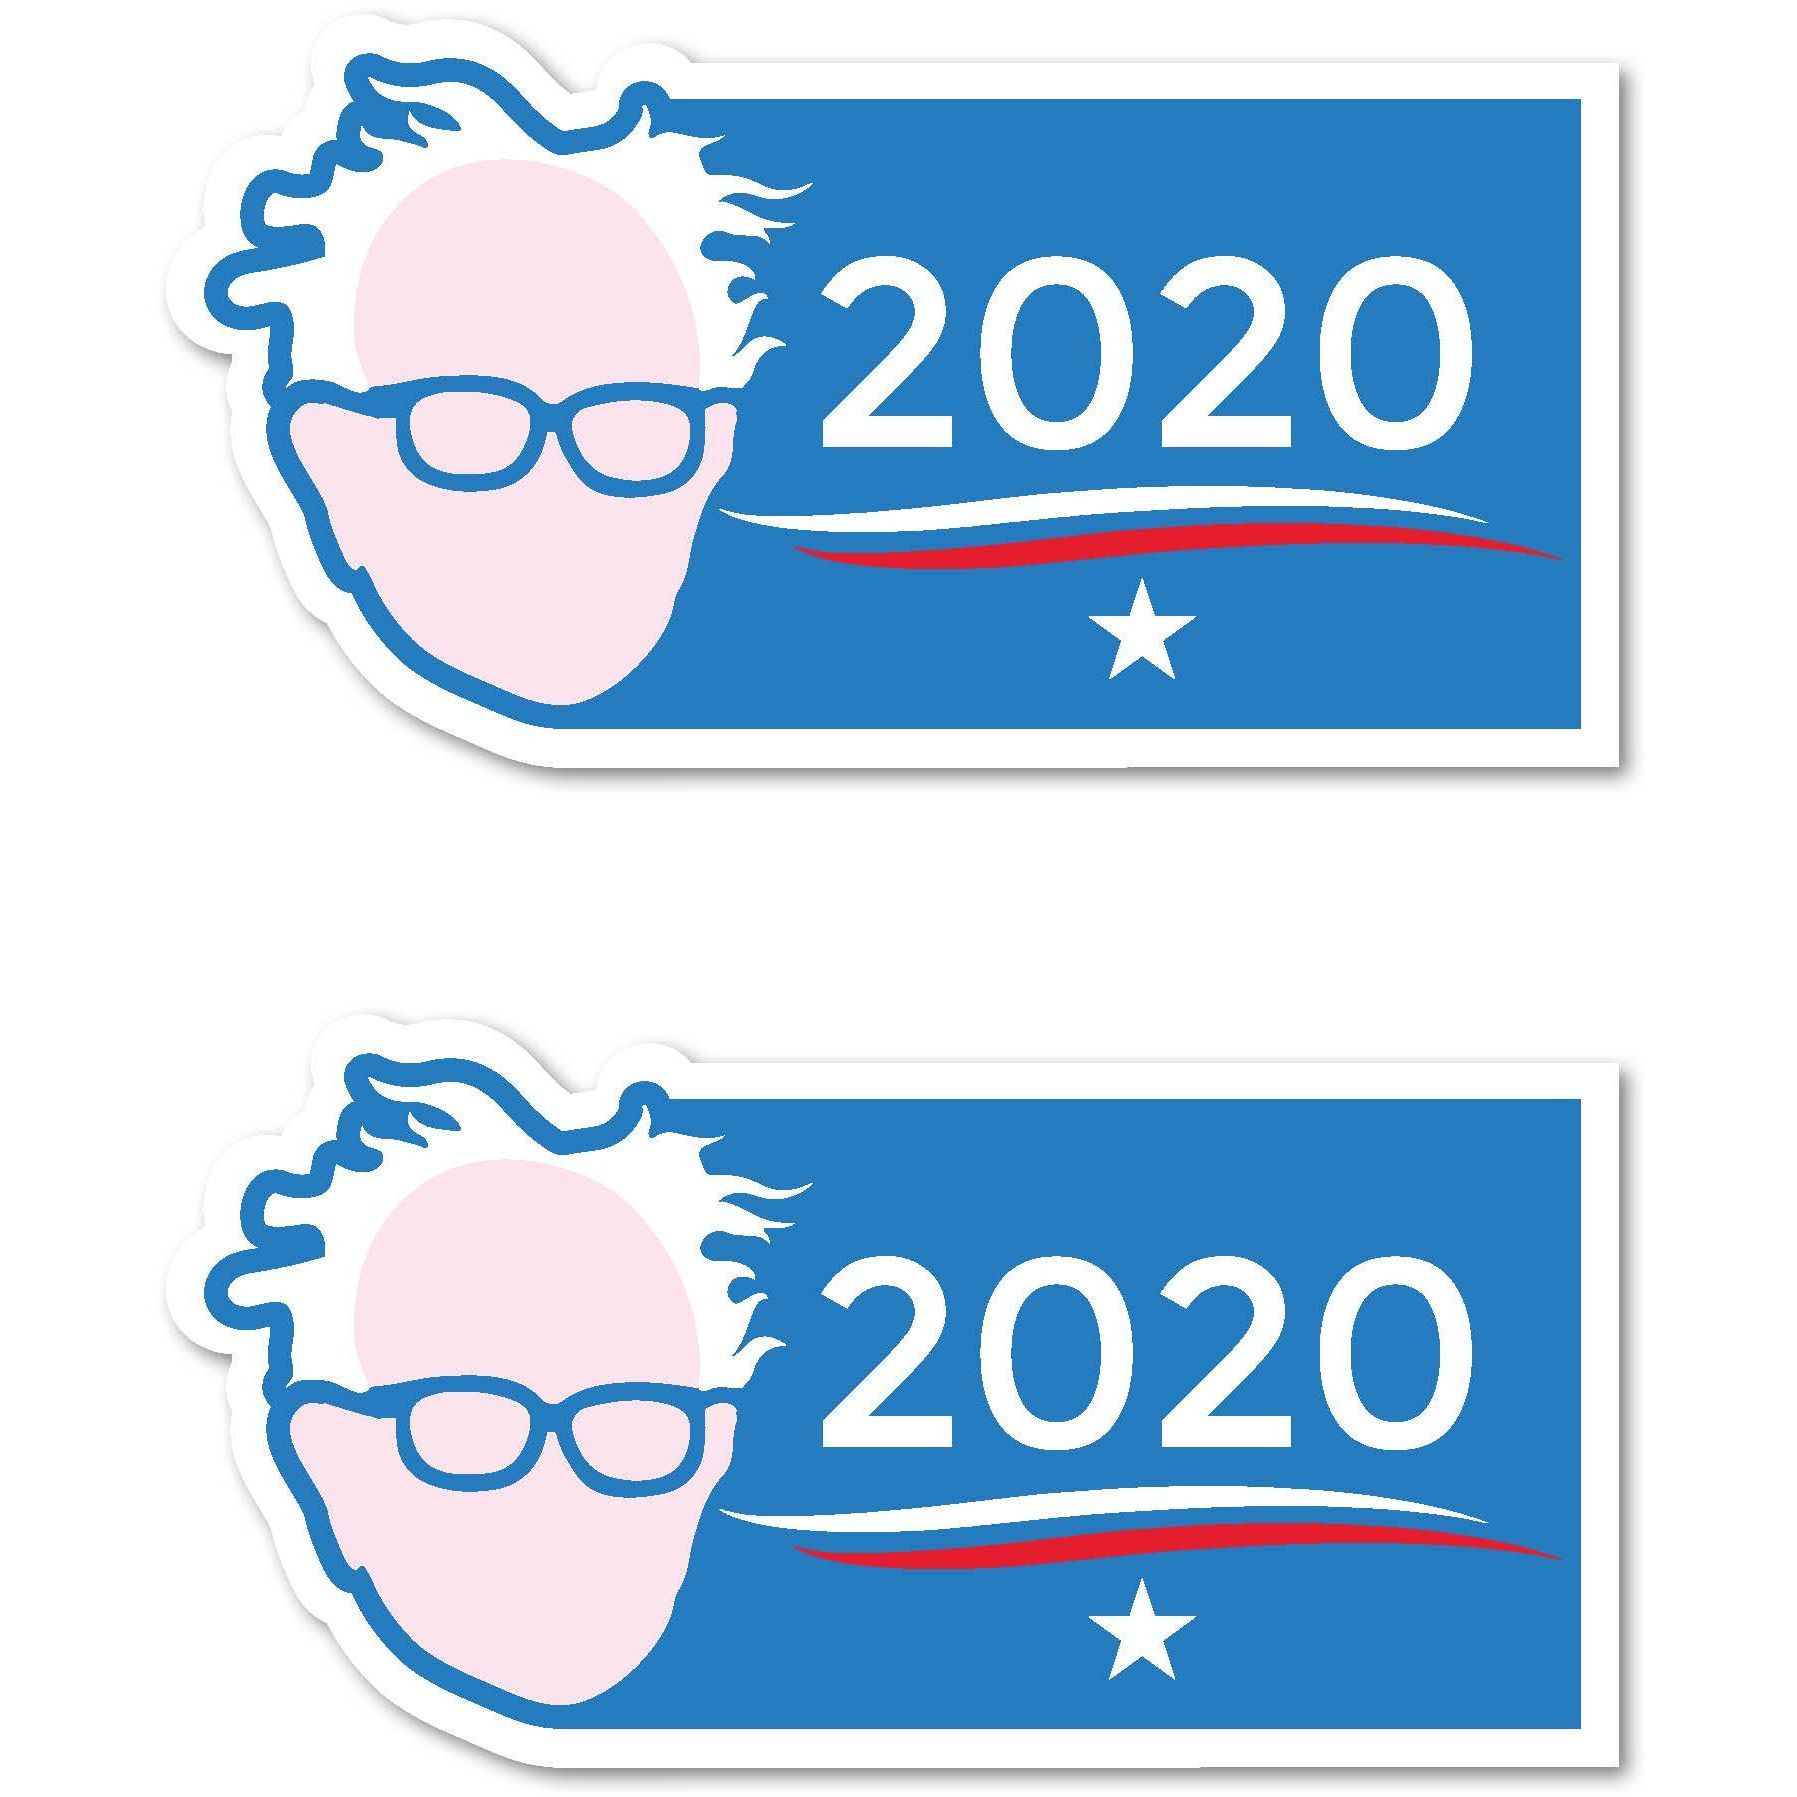 bernie sanders for president 2020 trump clinton 7 x3 5 bumper bernie sanders for president 2020 trump clinton 7 x3 5 bumper sticker decal bernie sanders products and clinton n jie